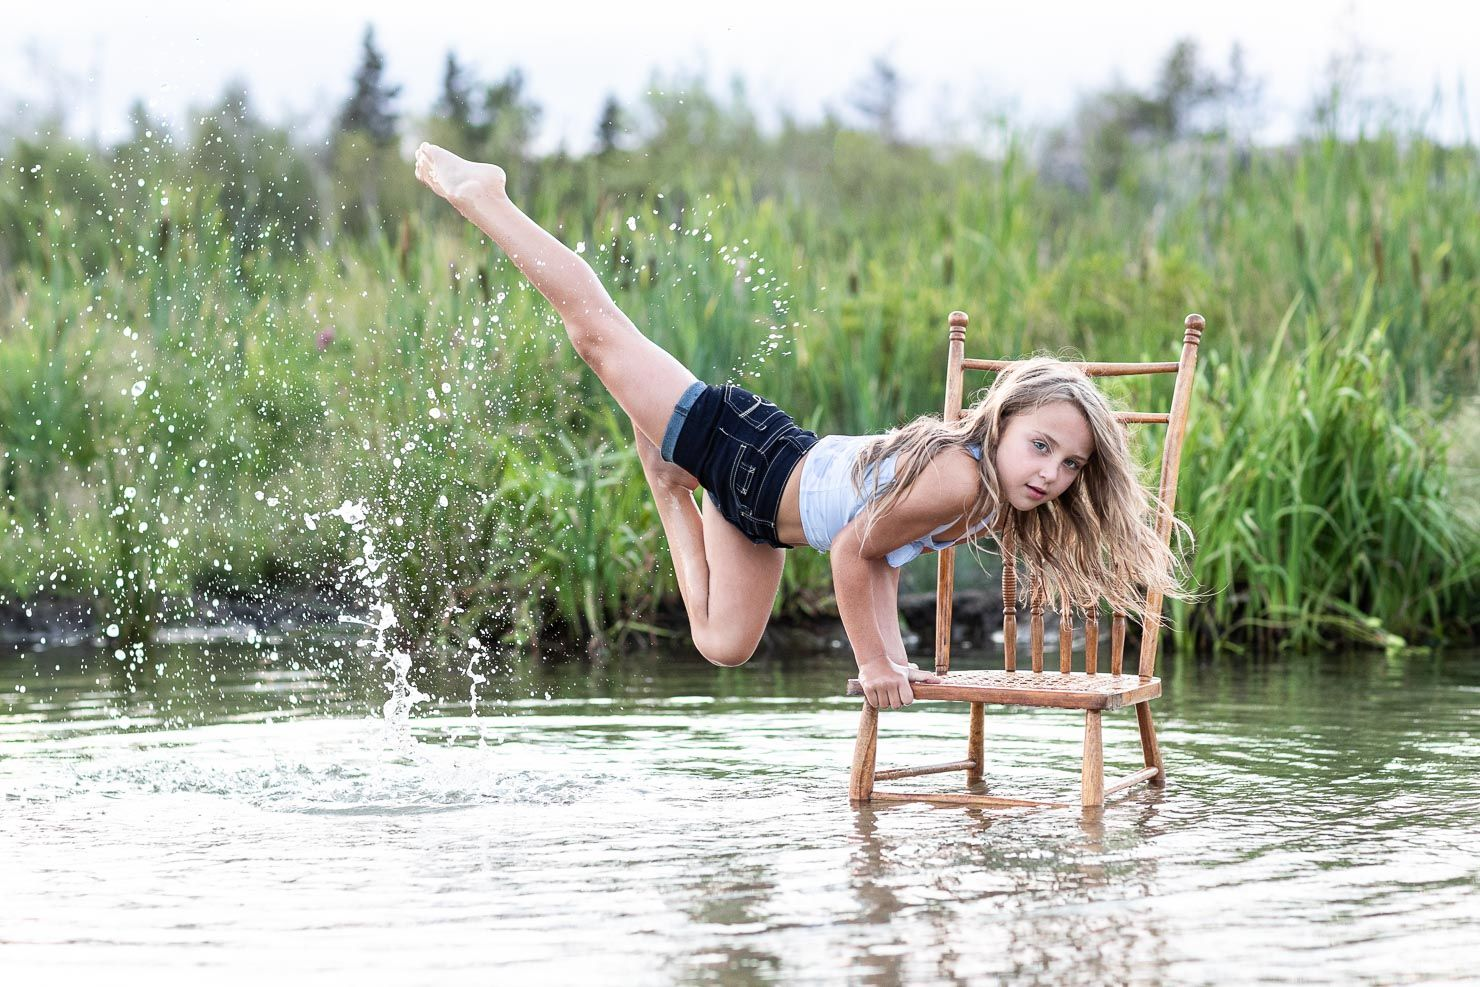 Dancing in the Water, Chair Dance, Dancer, Dance Pose, Dance by aKaiserPhoto, Dance Photographer